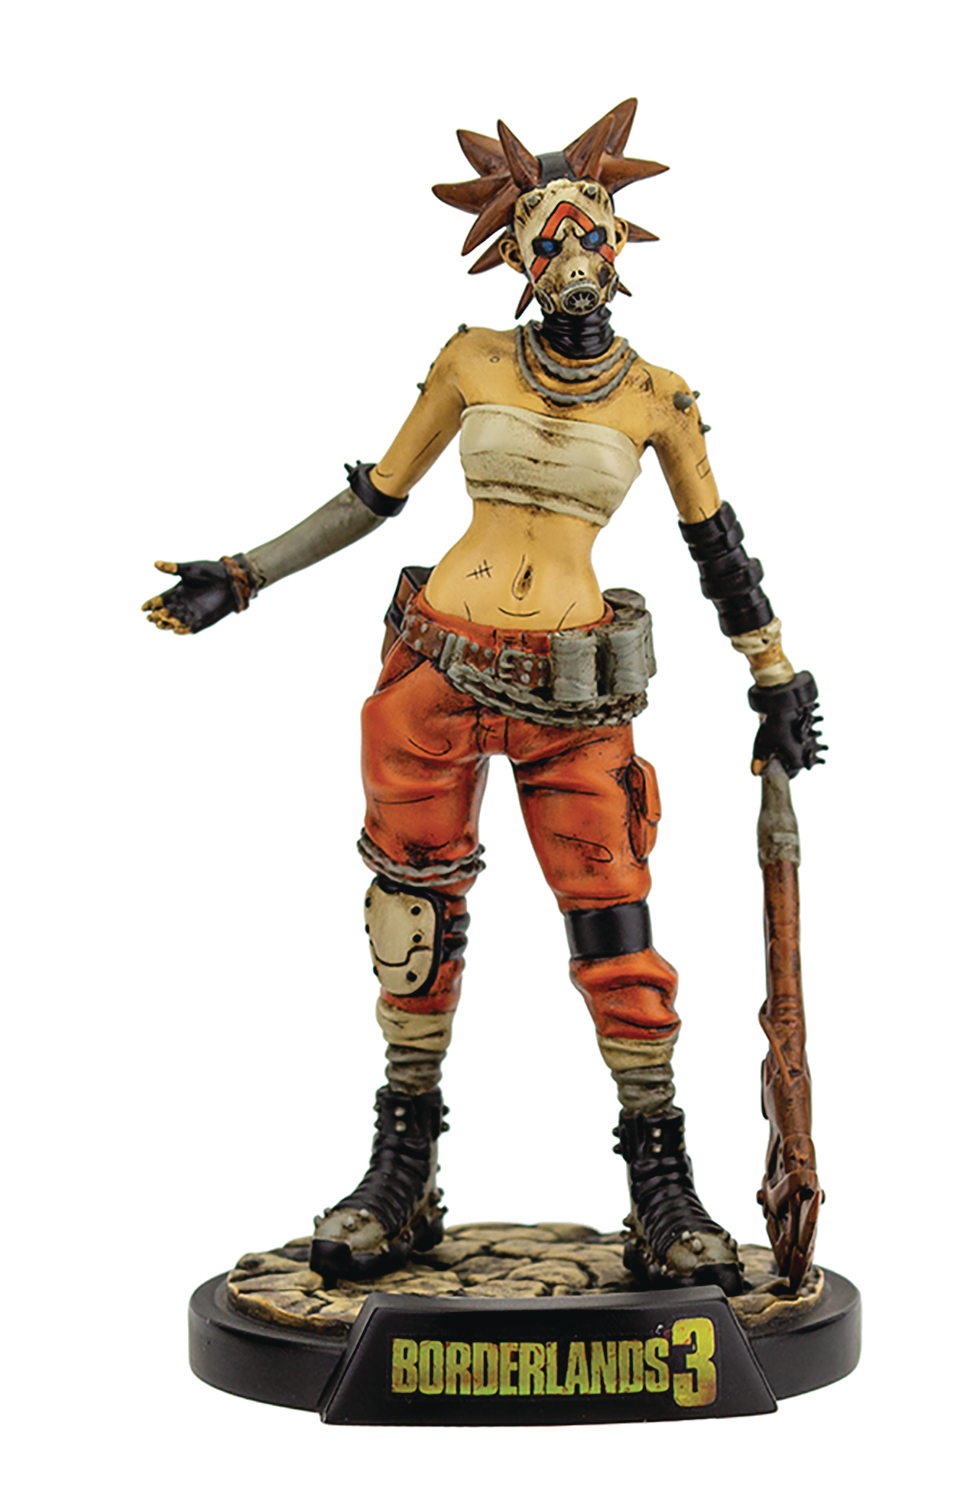 BORDERLANDS 3 FEMALE PSYCHO BANDIT 7IN VINYL FIG